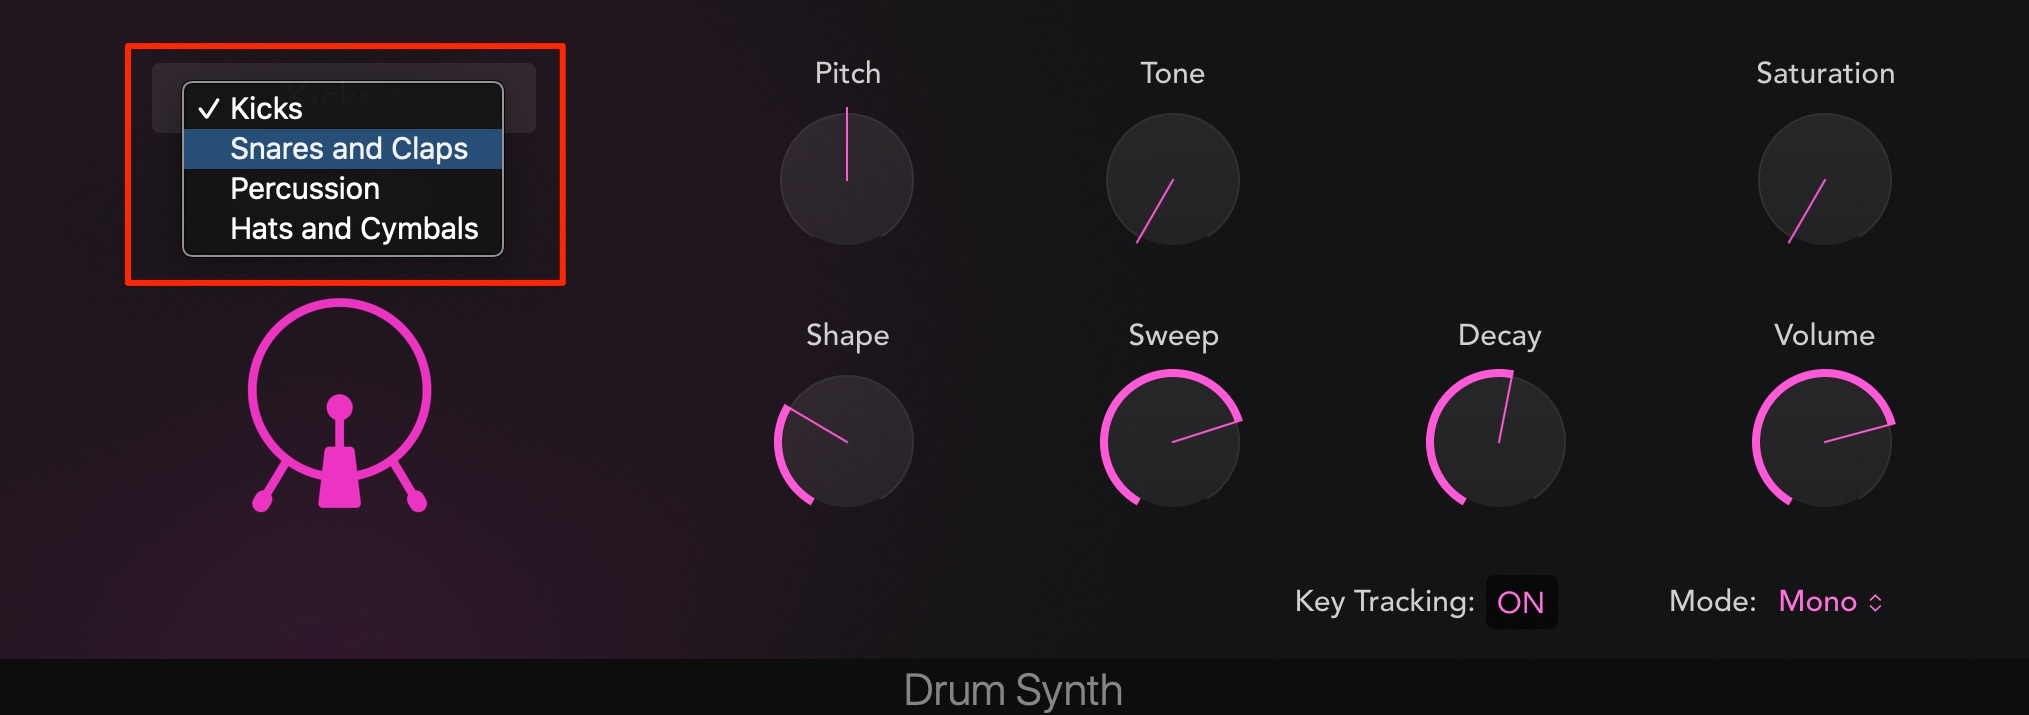 Drum_Synth